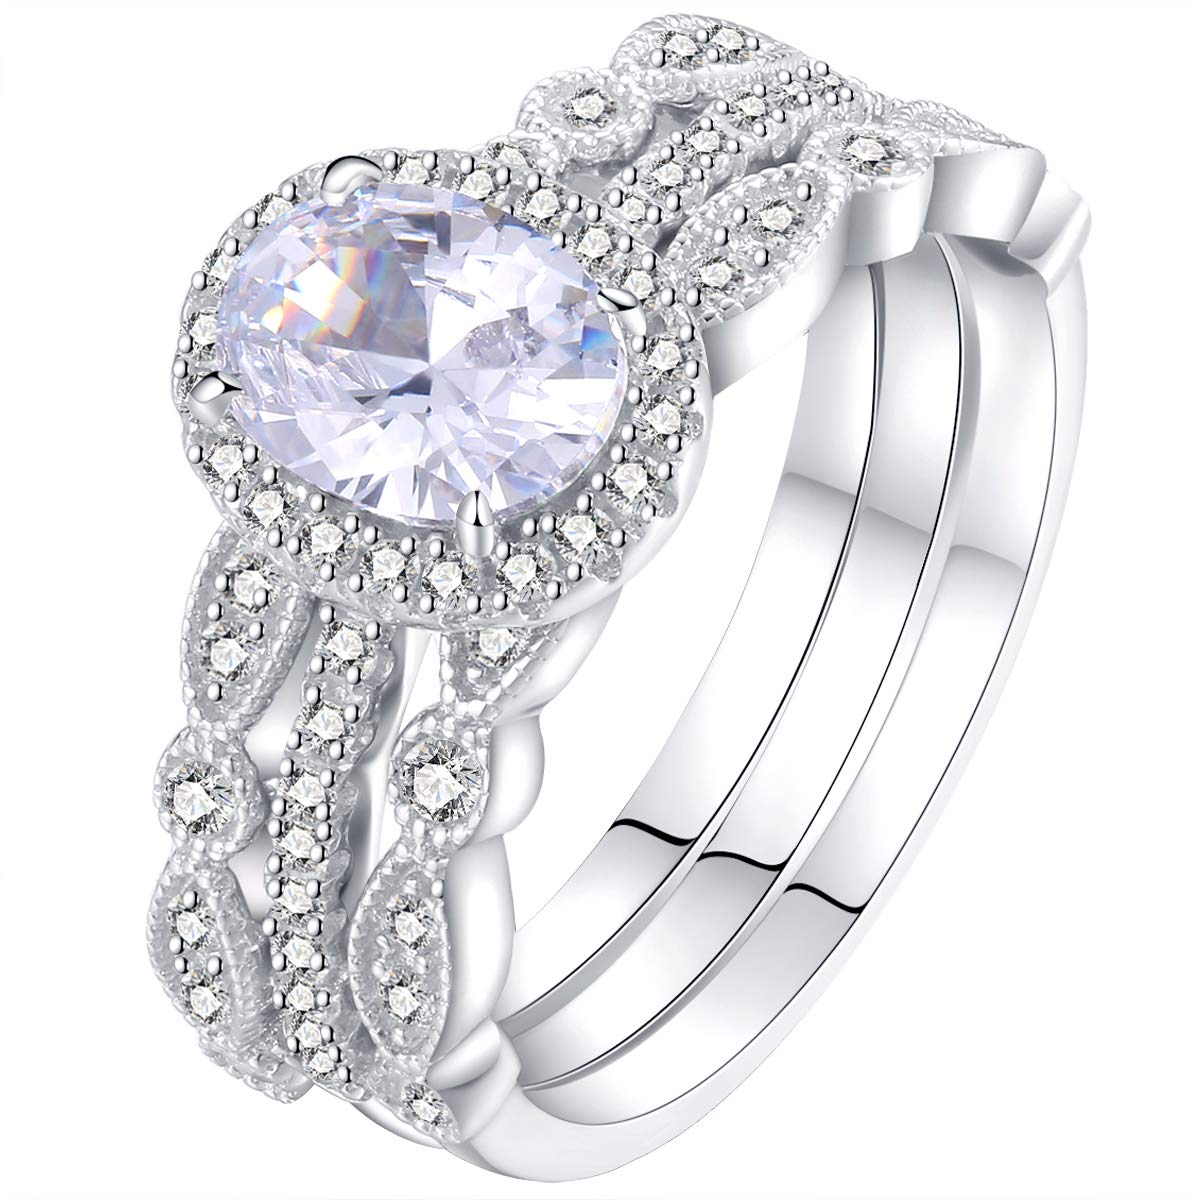 Amazon Newshe Jewellery Engagement Sets Wedding Rings For Women 925 Sterling Silver 3pcs White Cz Size 510 Jewelry: Sy Women Wedding Ring Sets At Websimilar.org